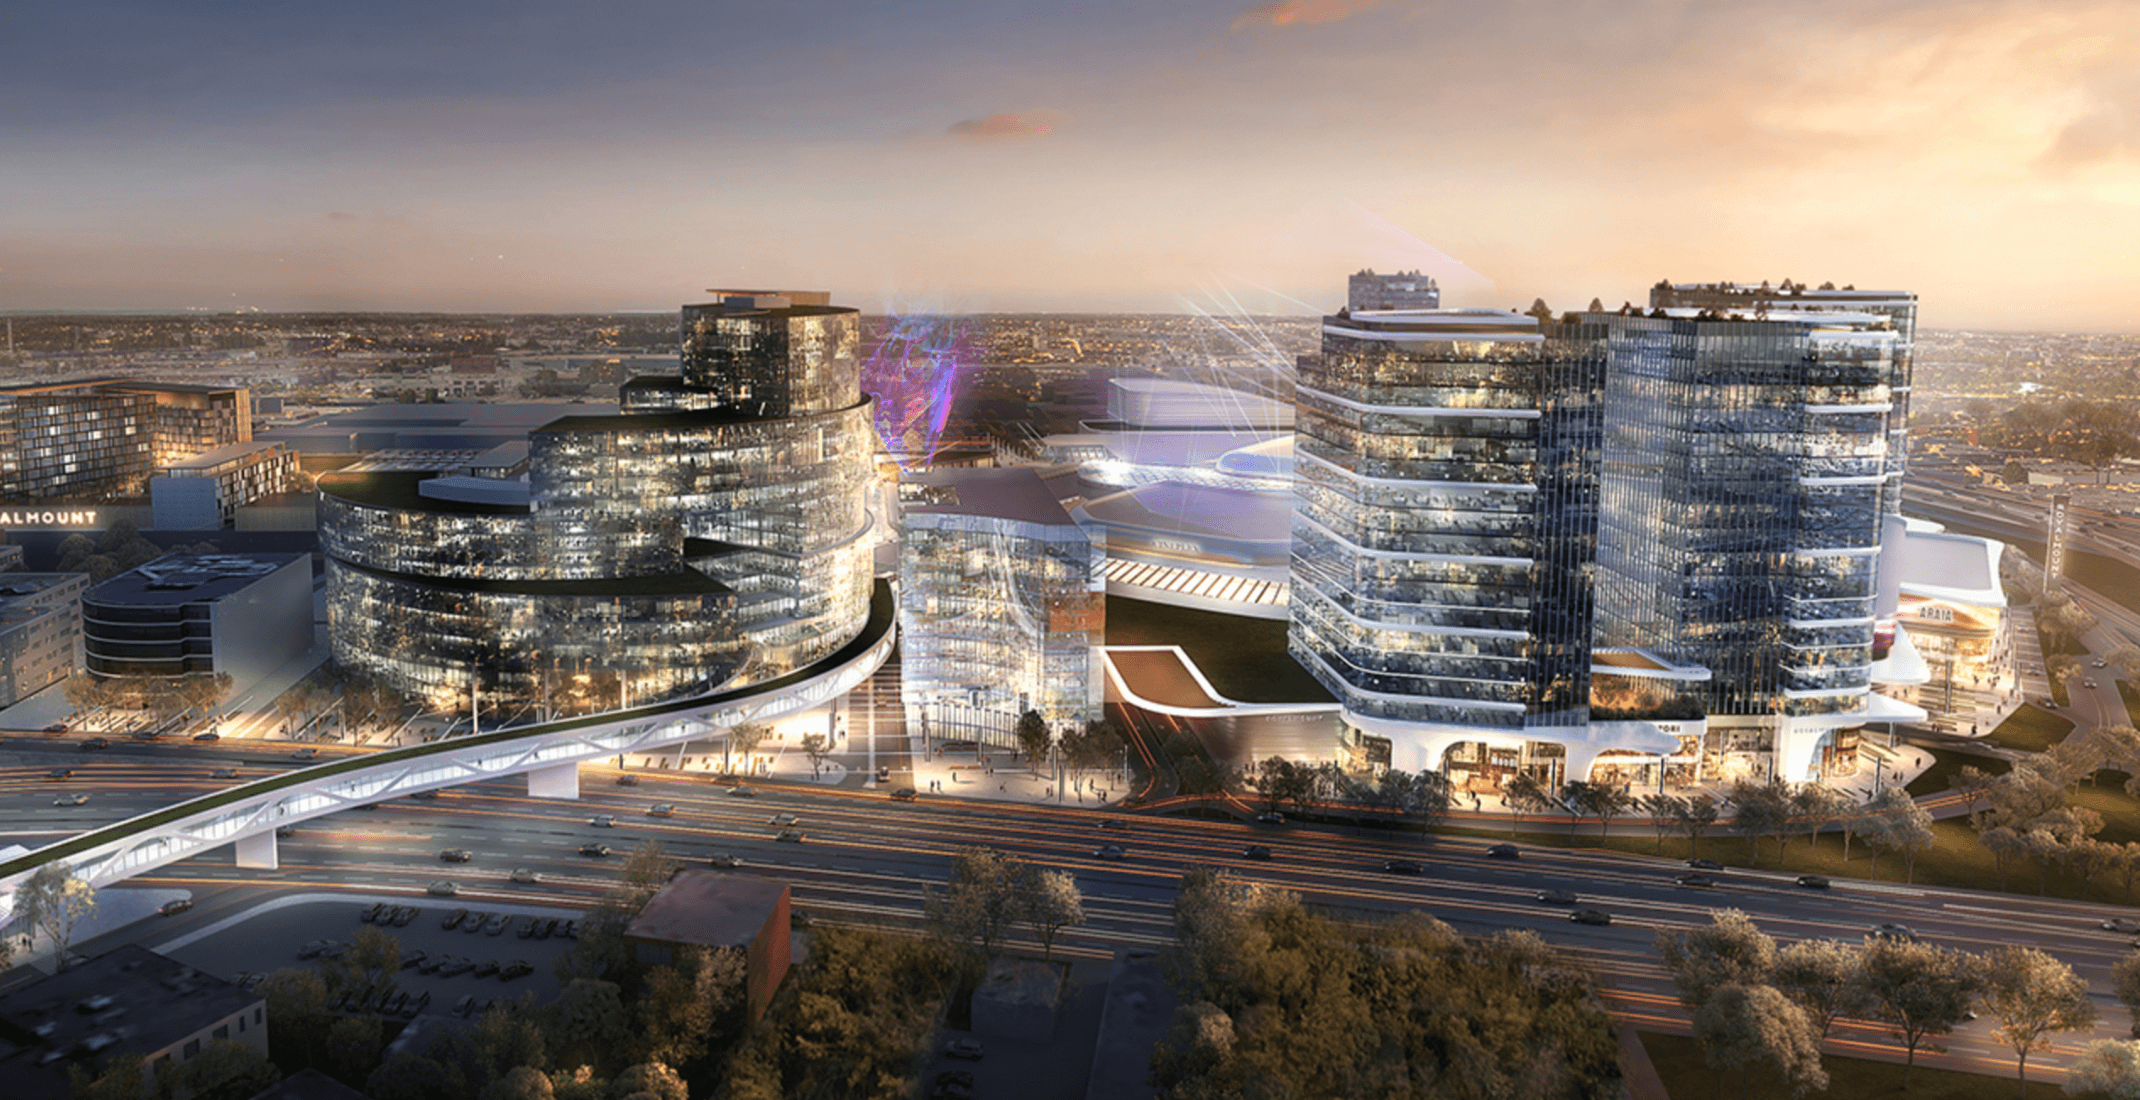 Montreal's new mega-mall will have a 'major impact' on traffic